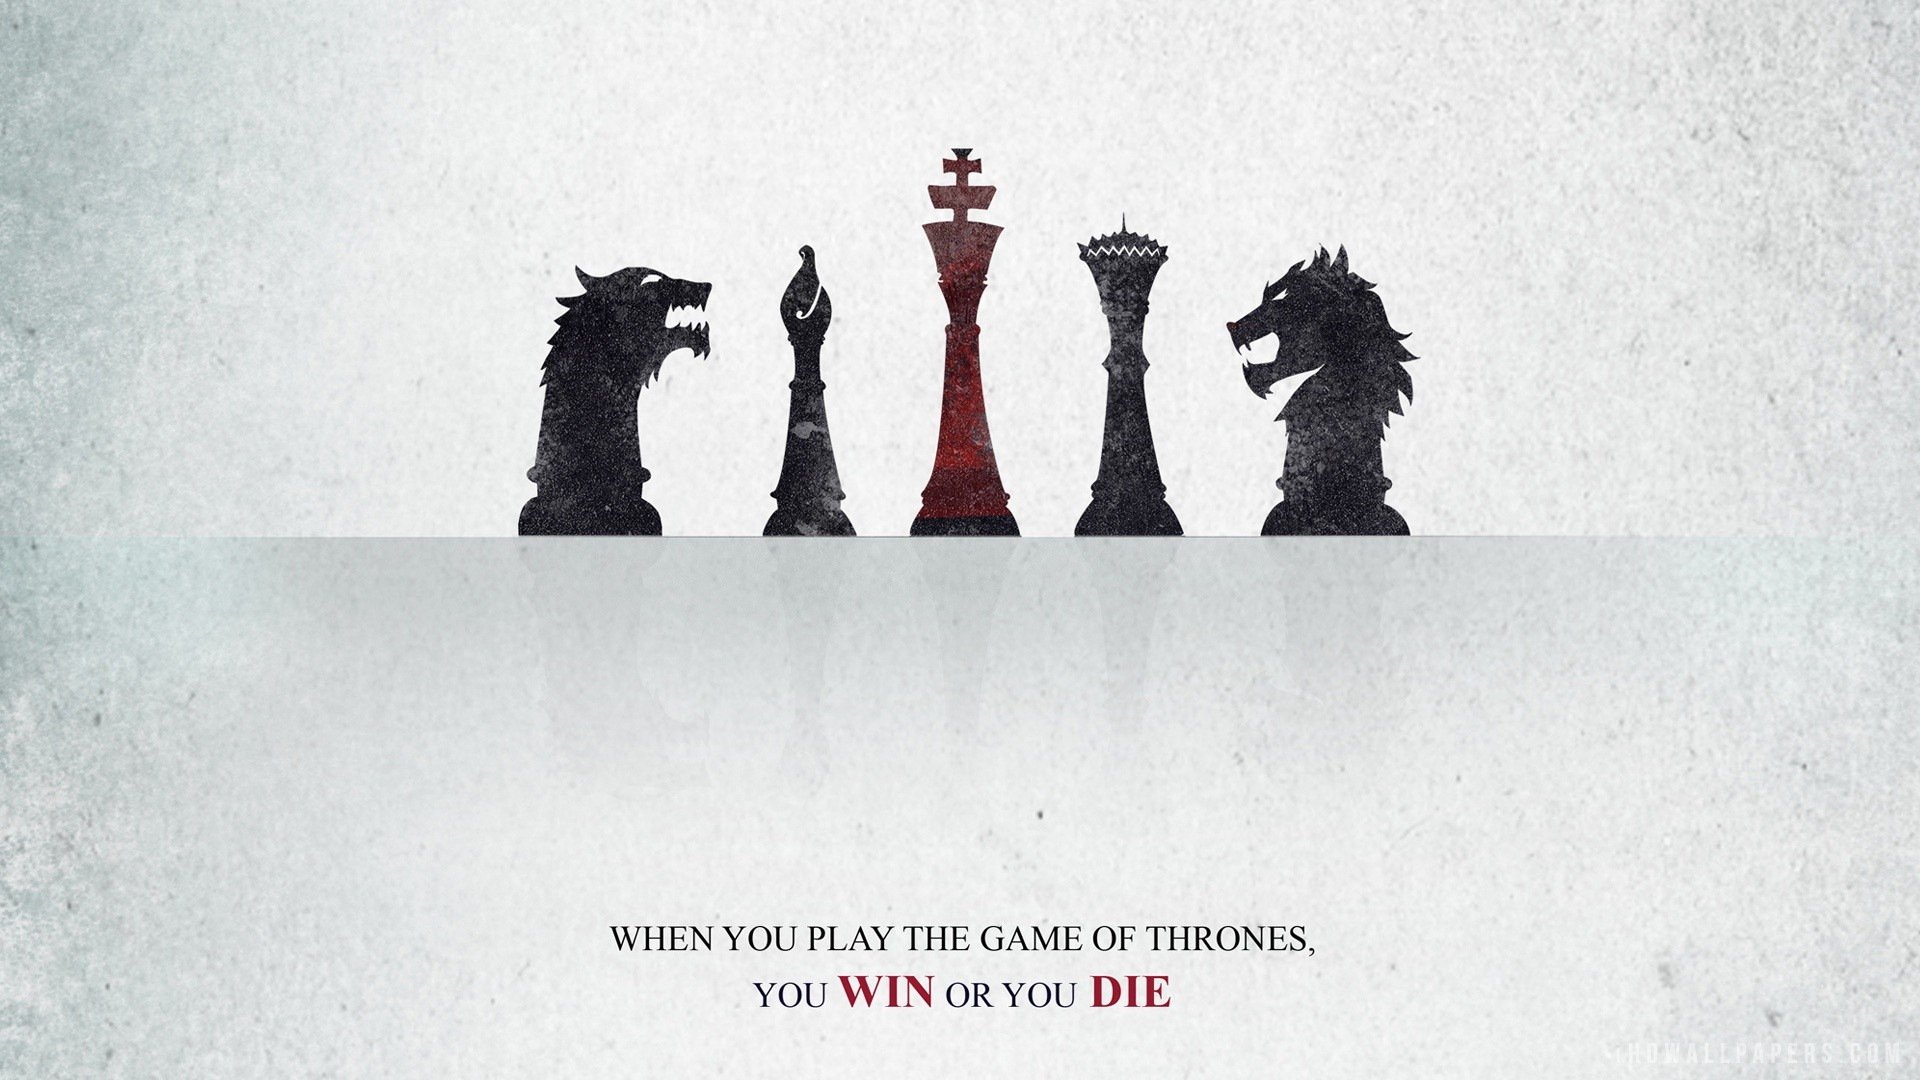 Game of thrones wallpapers high quality download free Got online hd